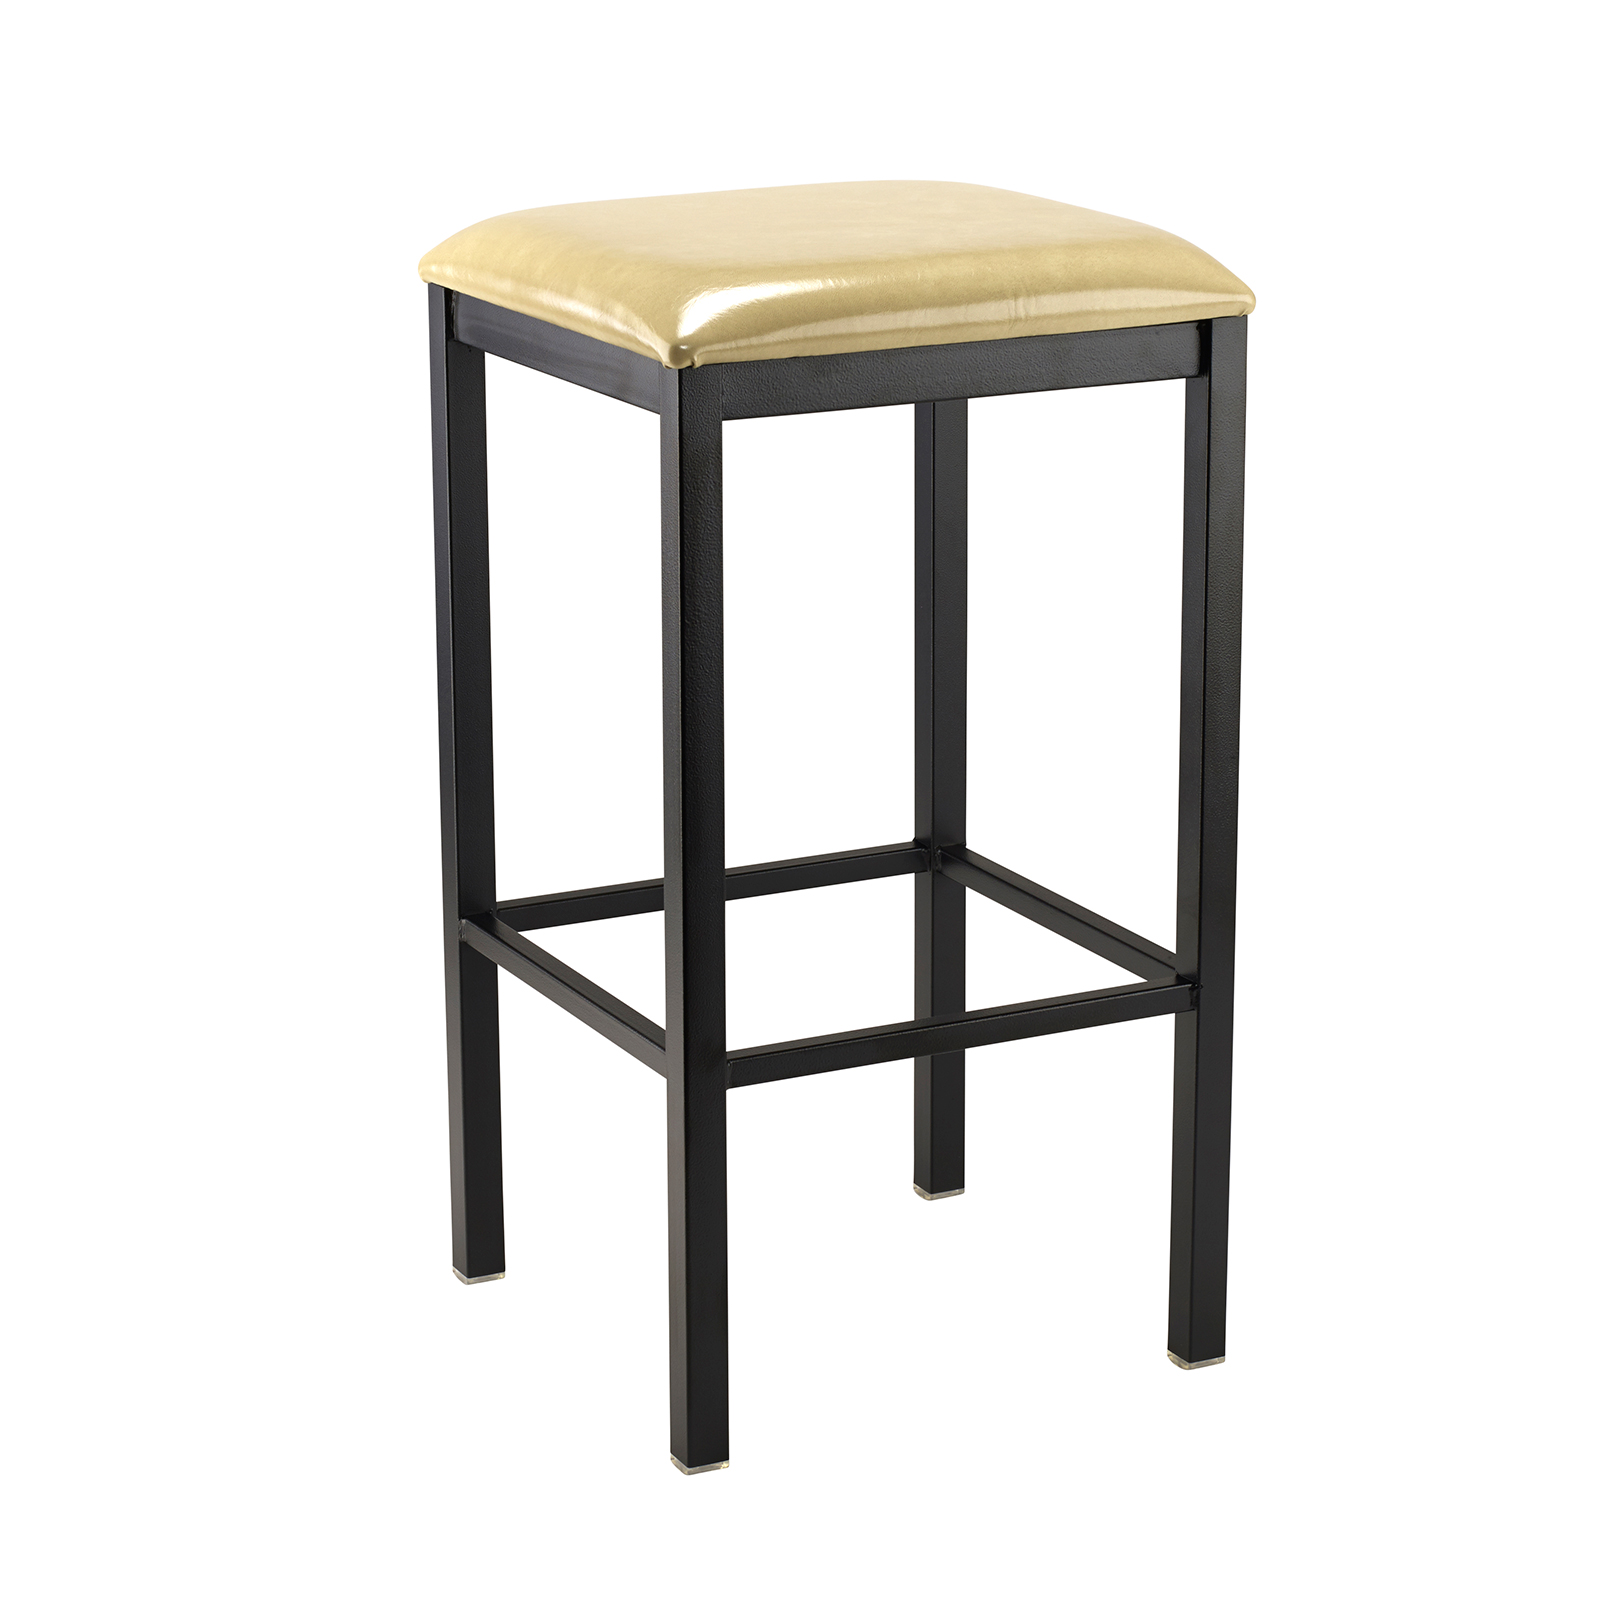 G & A Commercial Seating 713-B PS bar stool, indoor